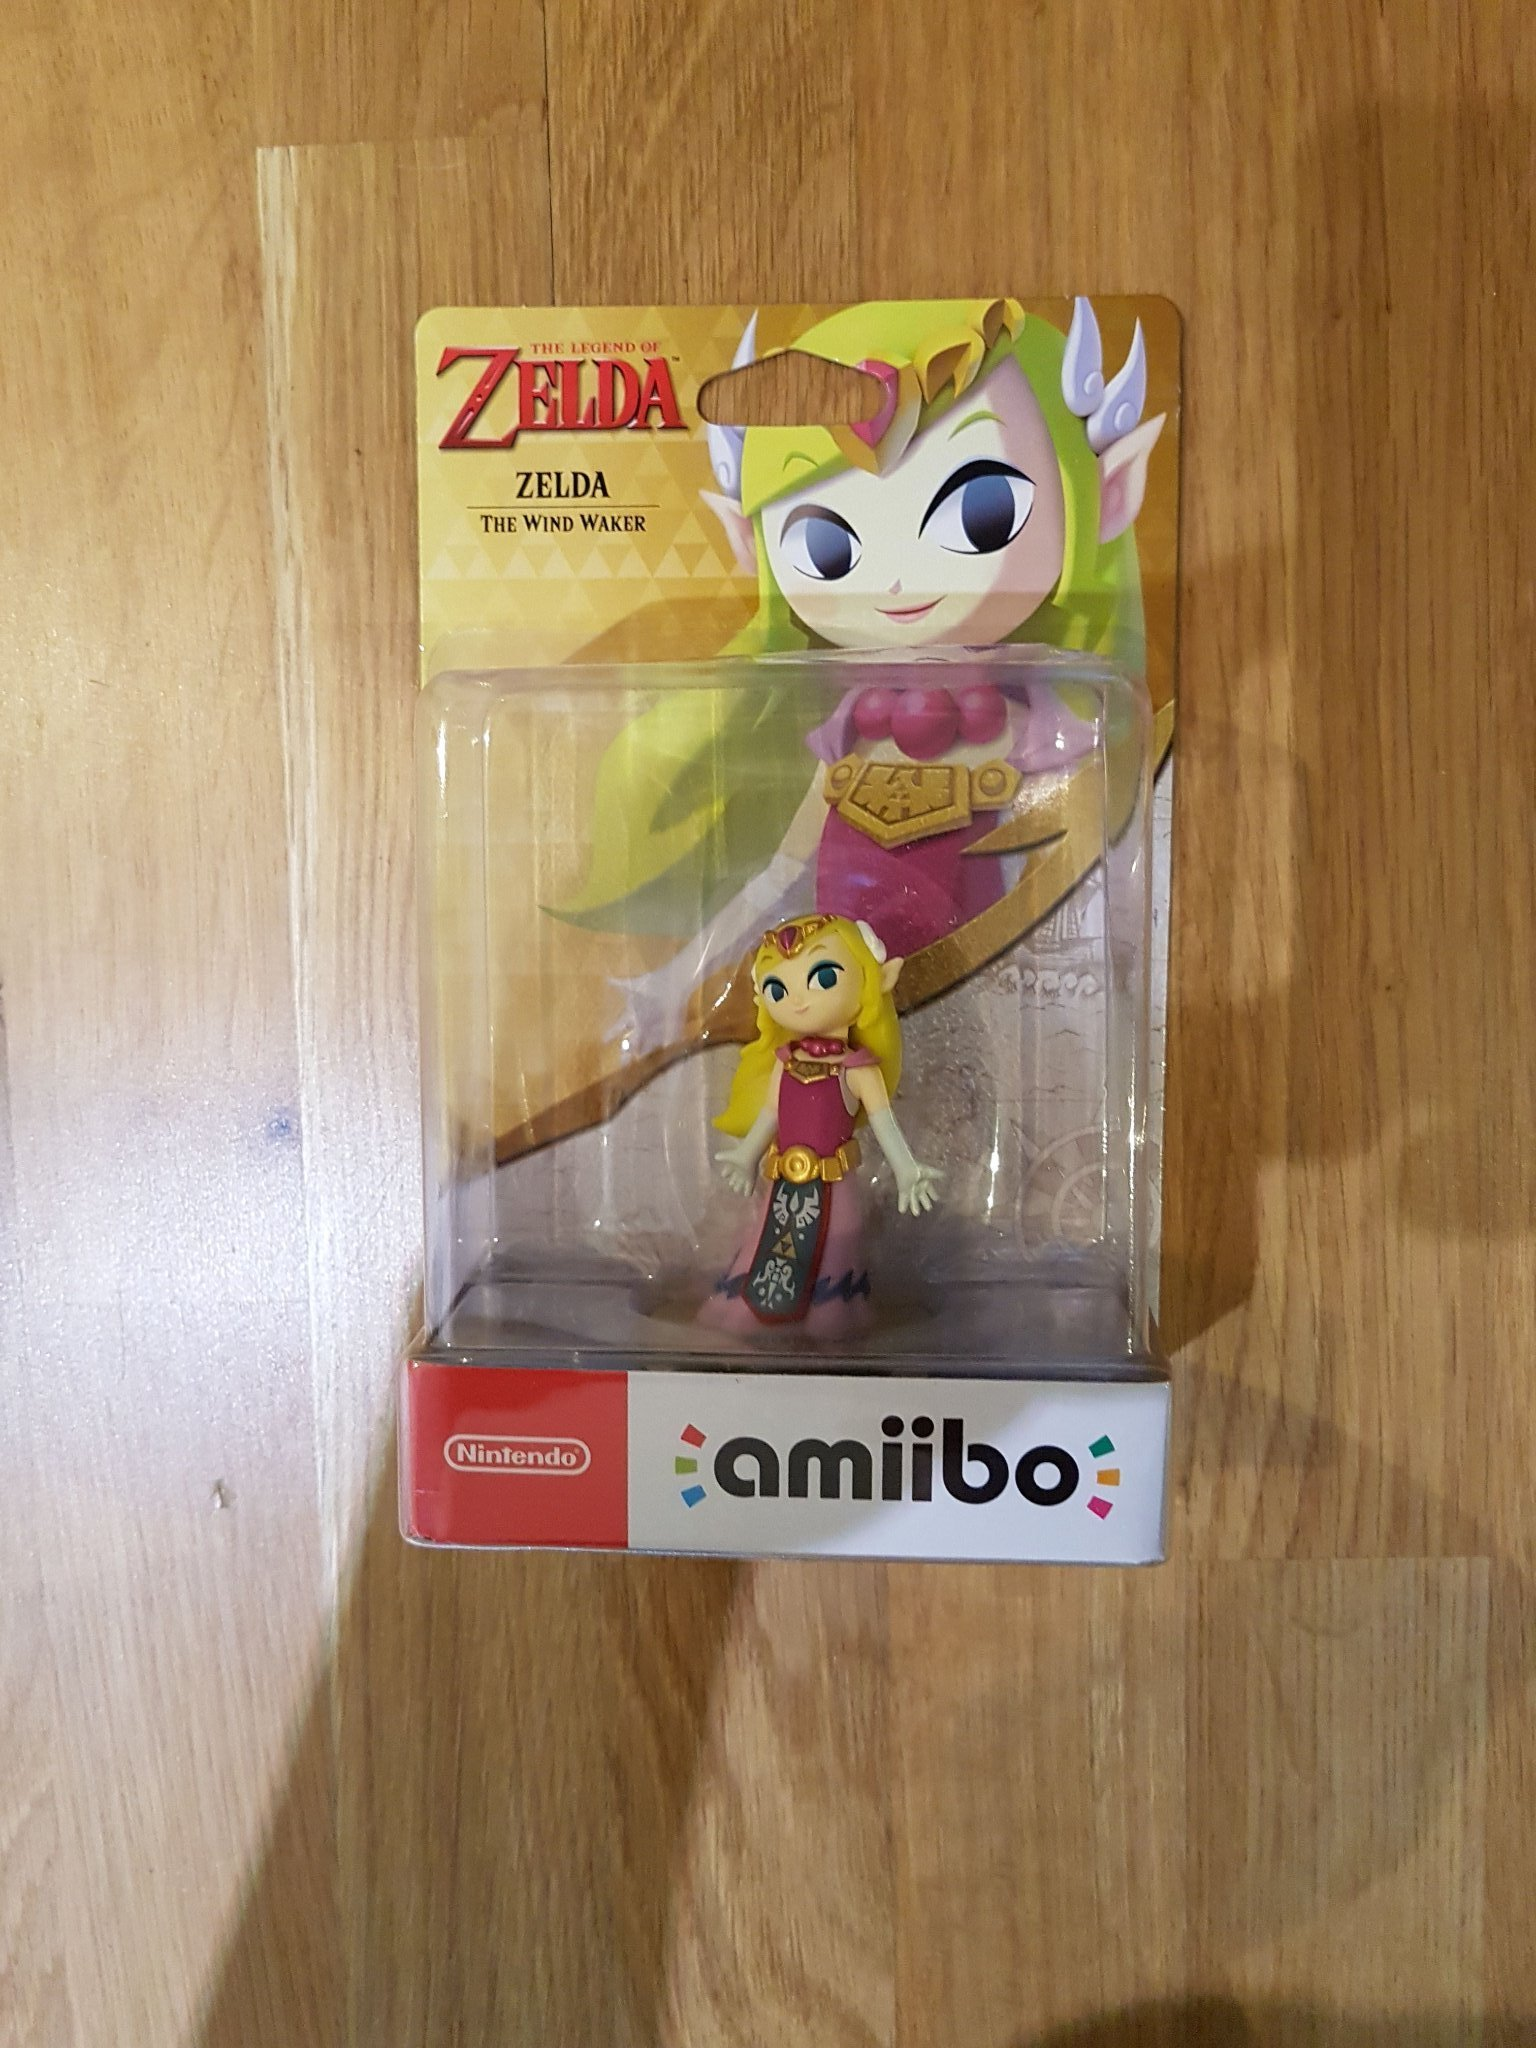 Nintendo Switch Amiibo. Zelda - The Wind Waker. Ny!